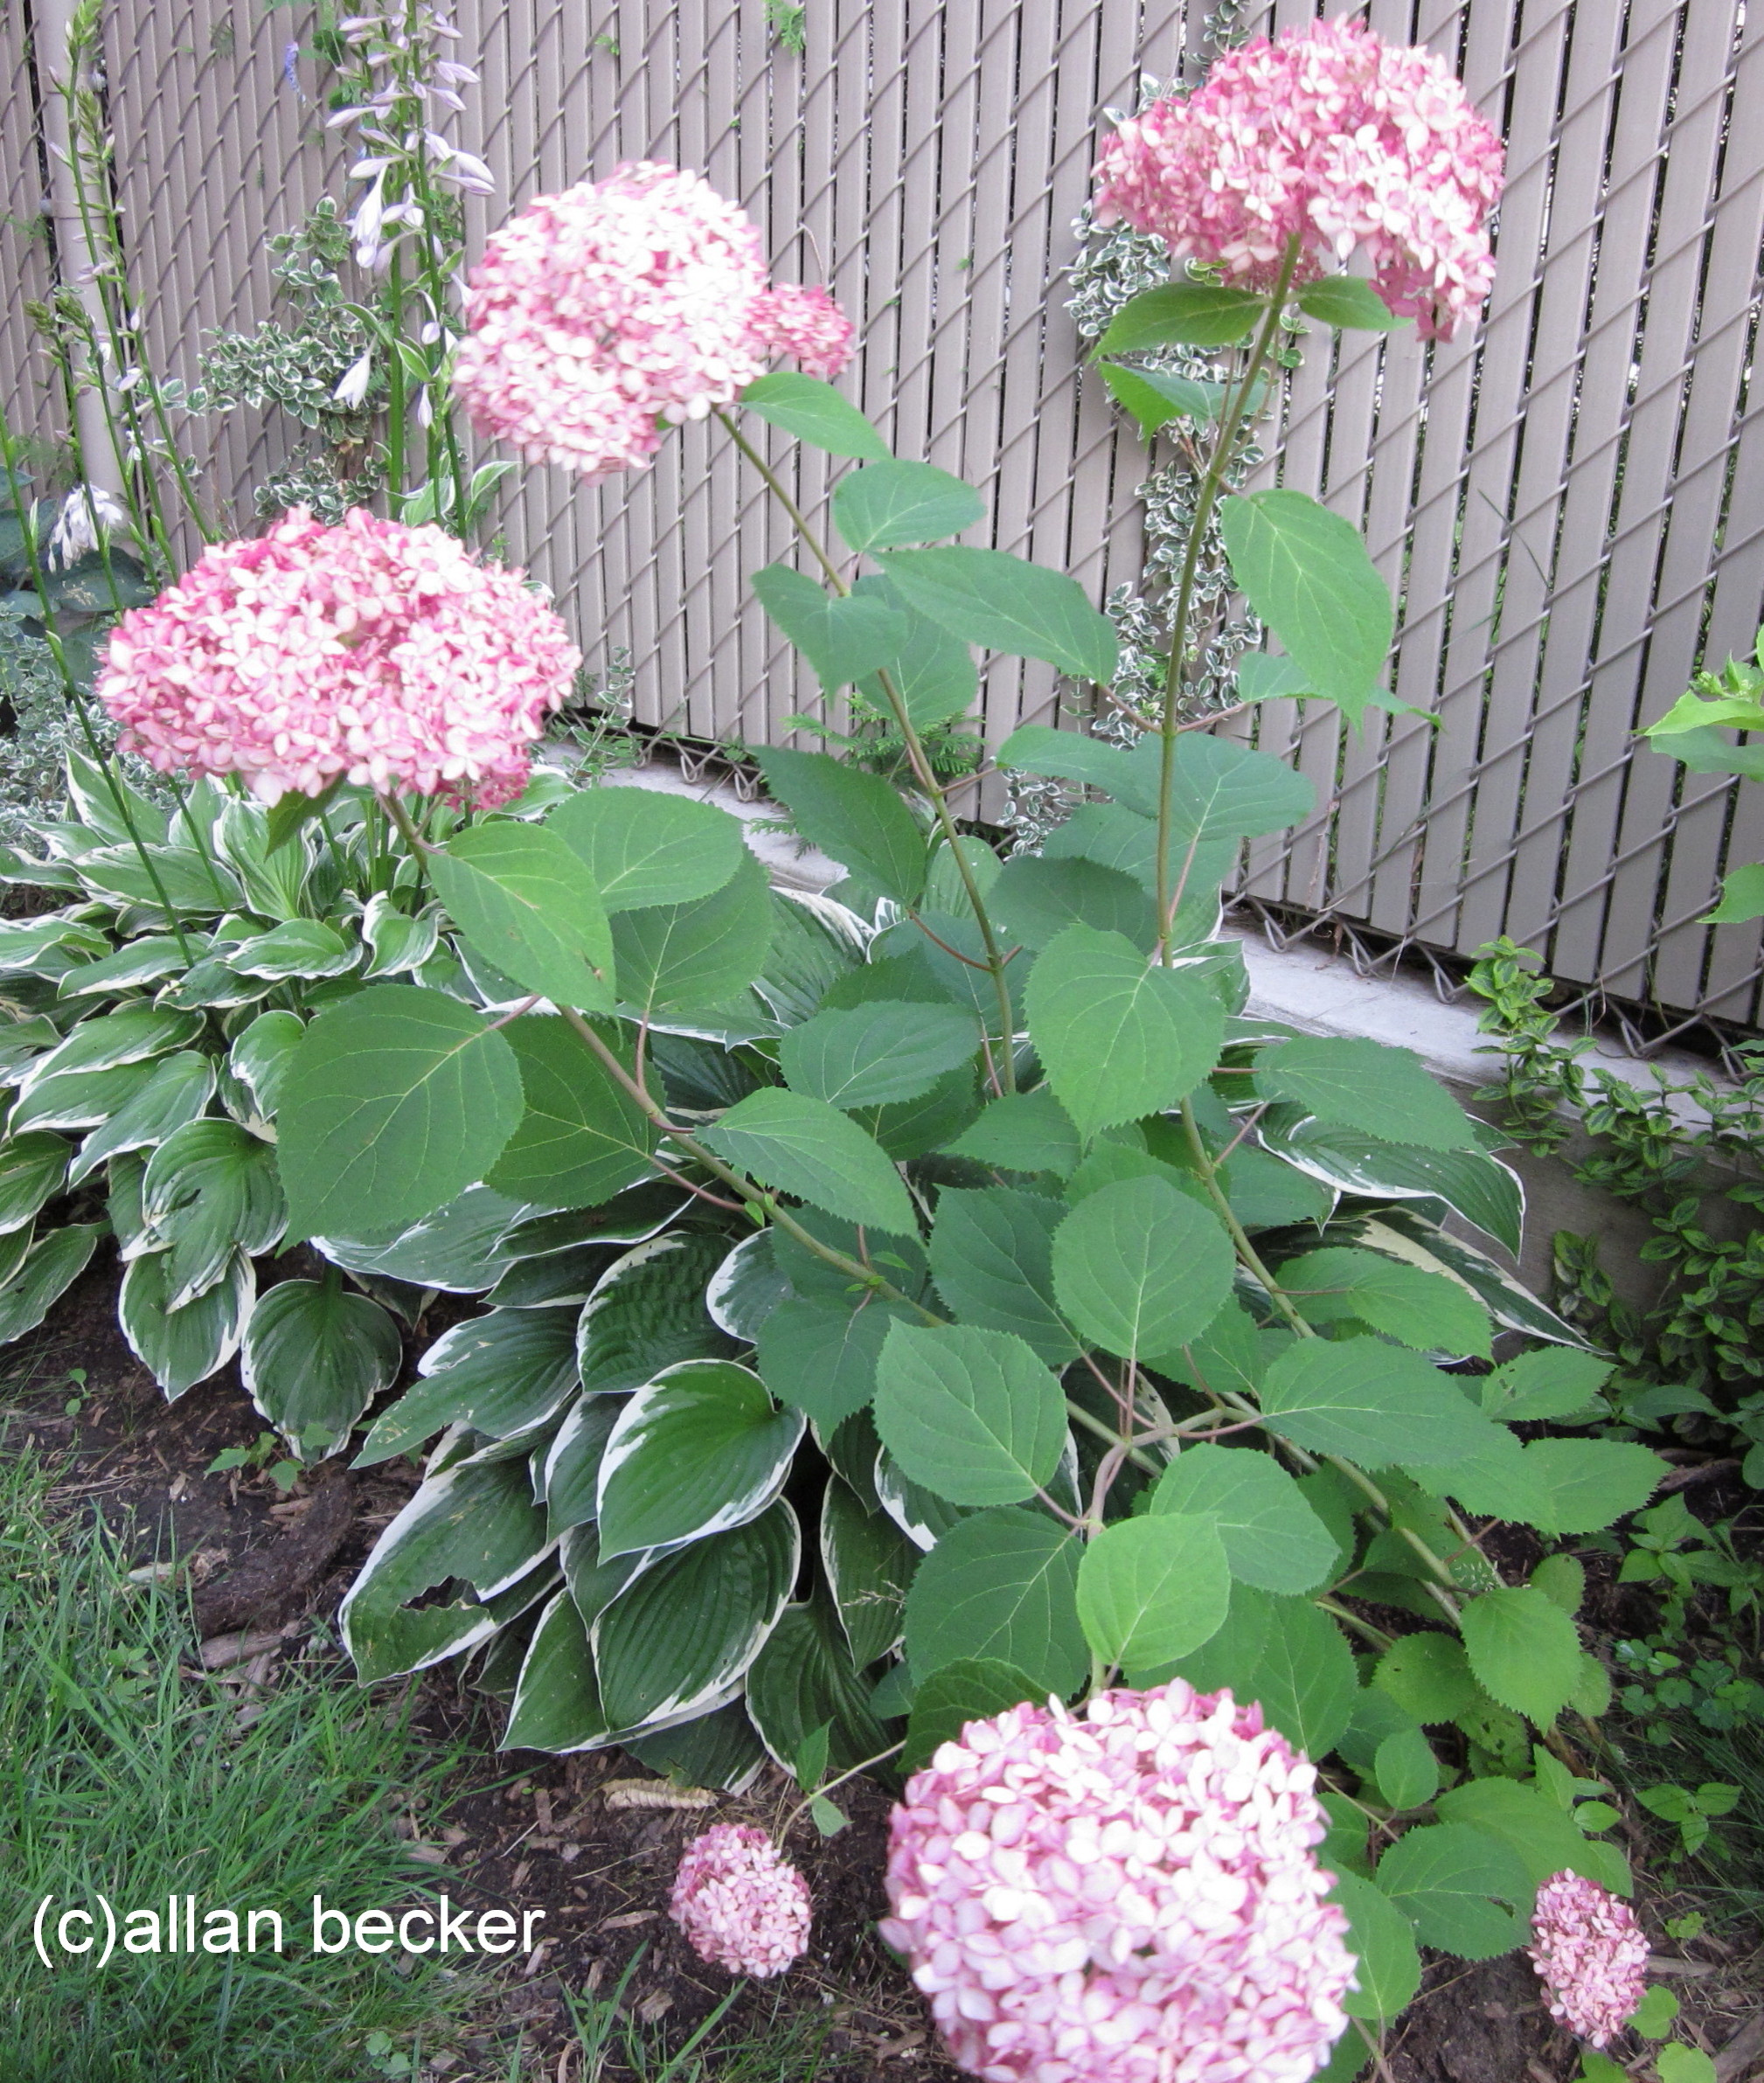 Pink is the favorite color in the flowerbed